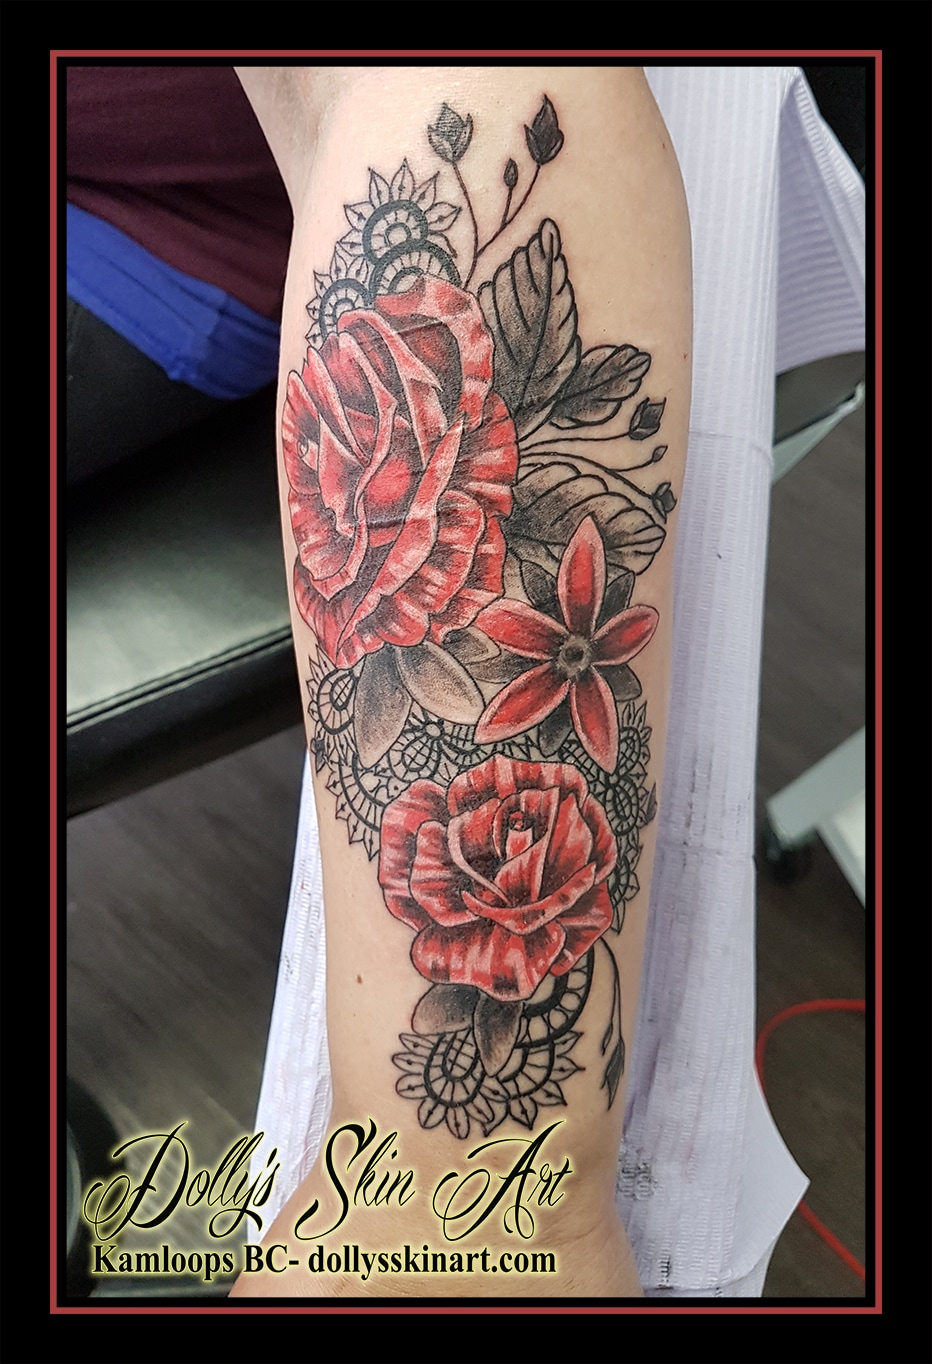 flowers rose leaves lace mandala arm colour forearm tattoo kamloops dolly's skin art